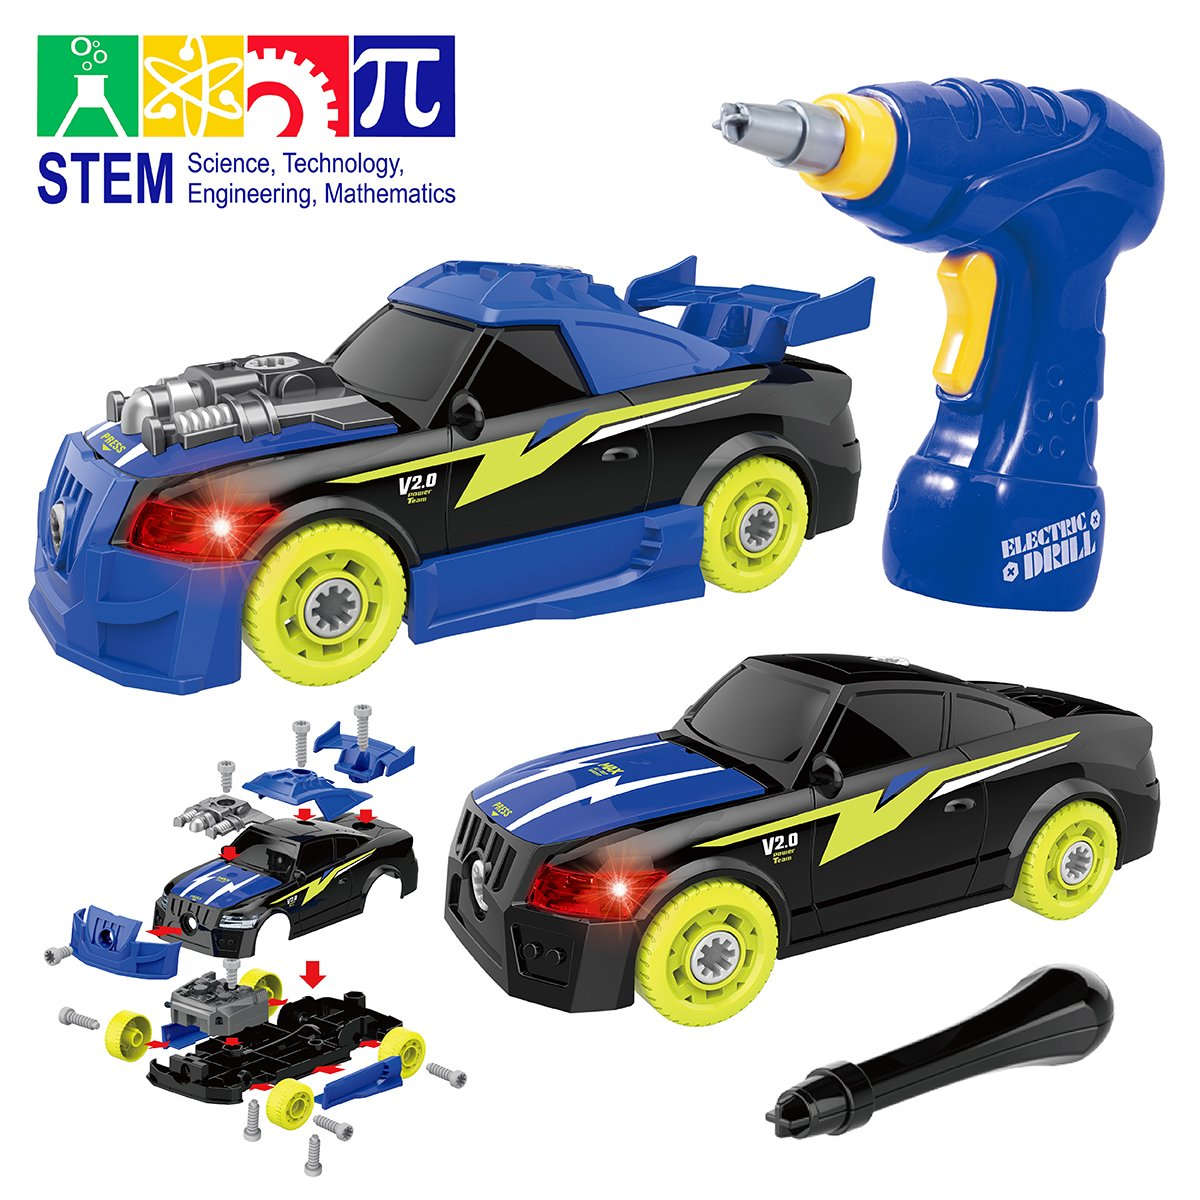 Maxxrace Take Apart Racing Car, STEM Toys 26 Pieces Assembly Car Toys with Drill Tool, Lights and Sounds, Gifts for Kids Aged 3+ by Maxxrace (Image #1)